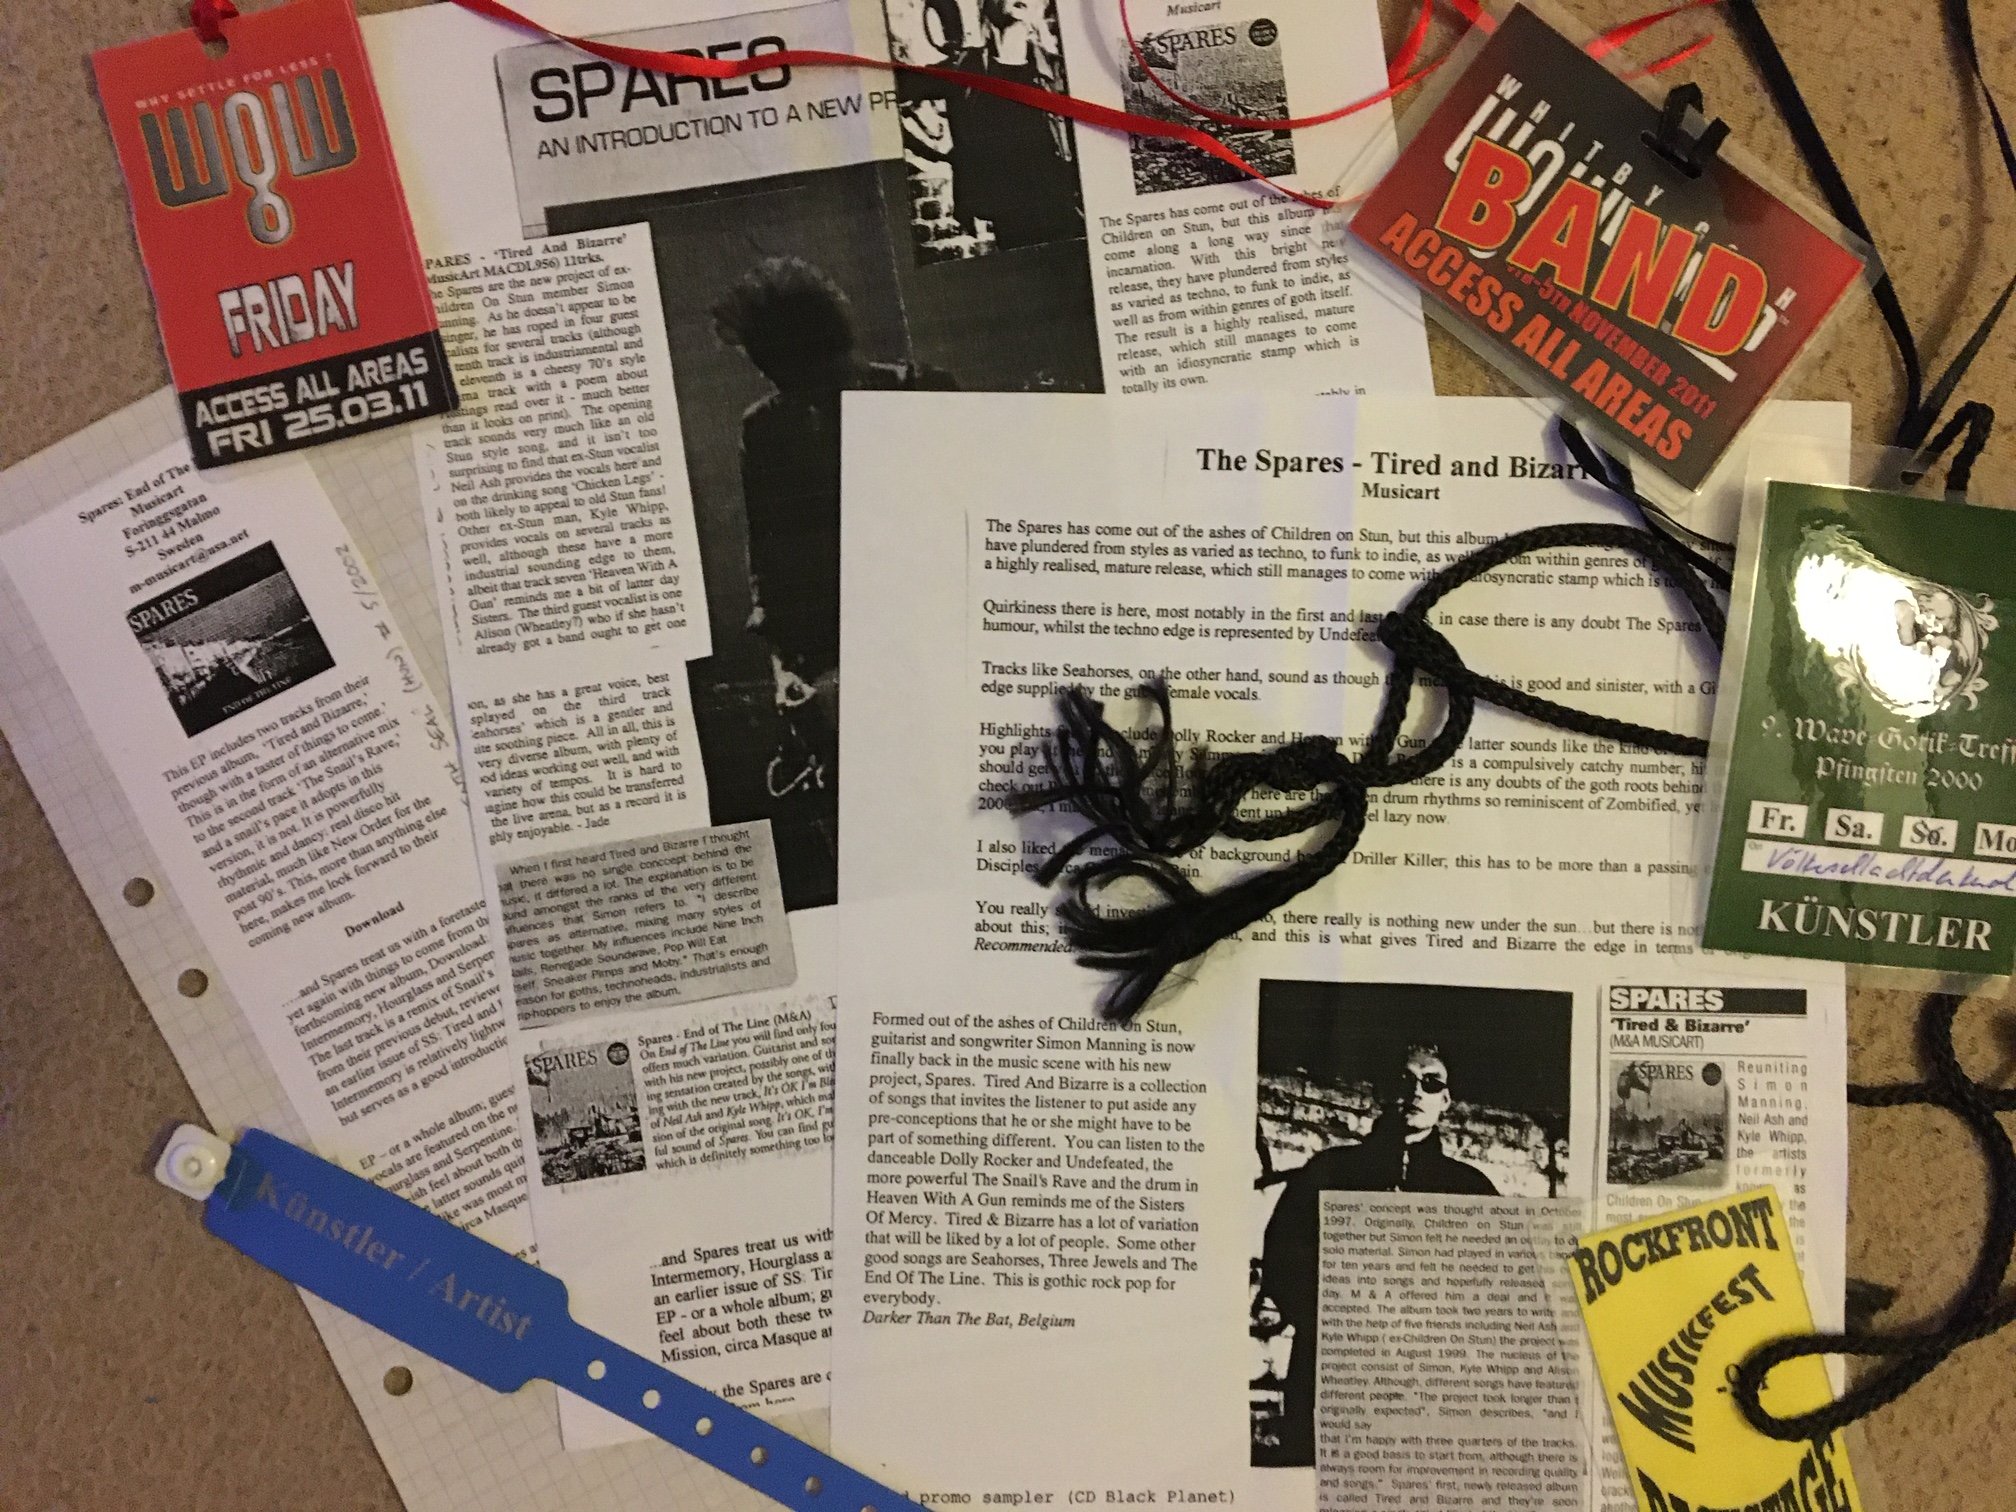 Scrap book, reviews, backstage passes and other tour memorabilia scattered about